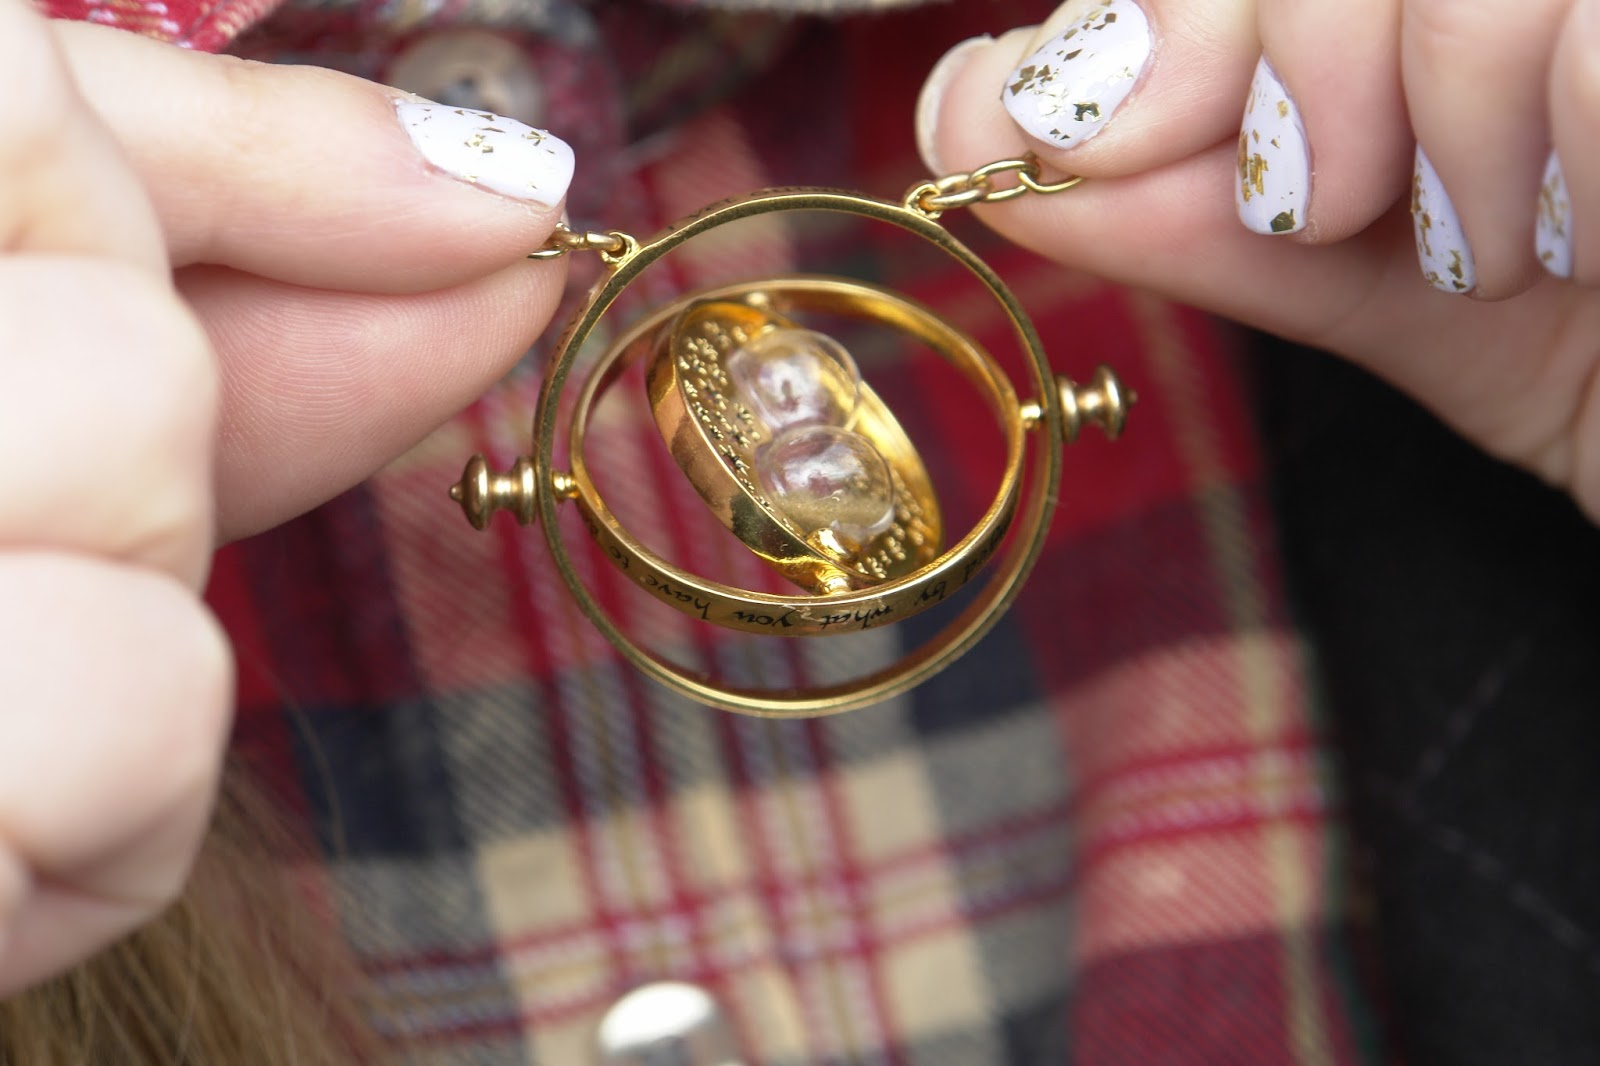 WHAT I WORE TODAY: Hermione's Time-Turner necklace, WIWT, WHAT I WORE TODAY, coat, Dorothy Perkins, shirt, Primark, jeans, shoes, ankle boots, ASOS, necklace, gold, jewellery, scarf, H and M, bags,